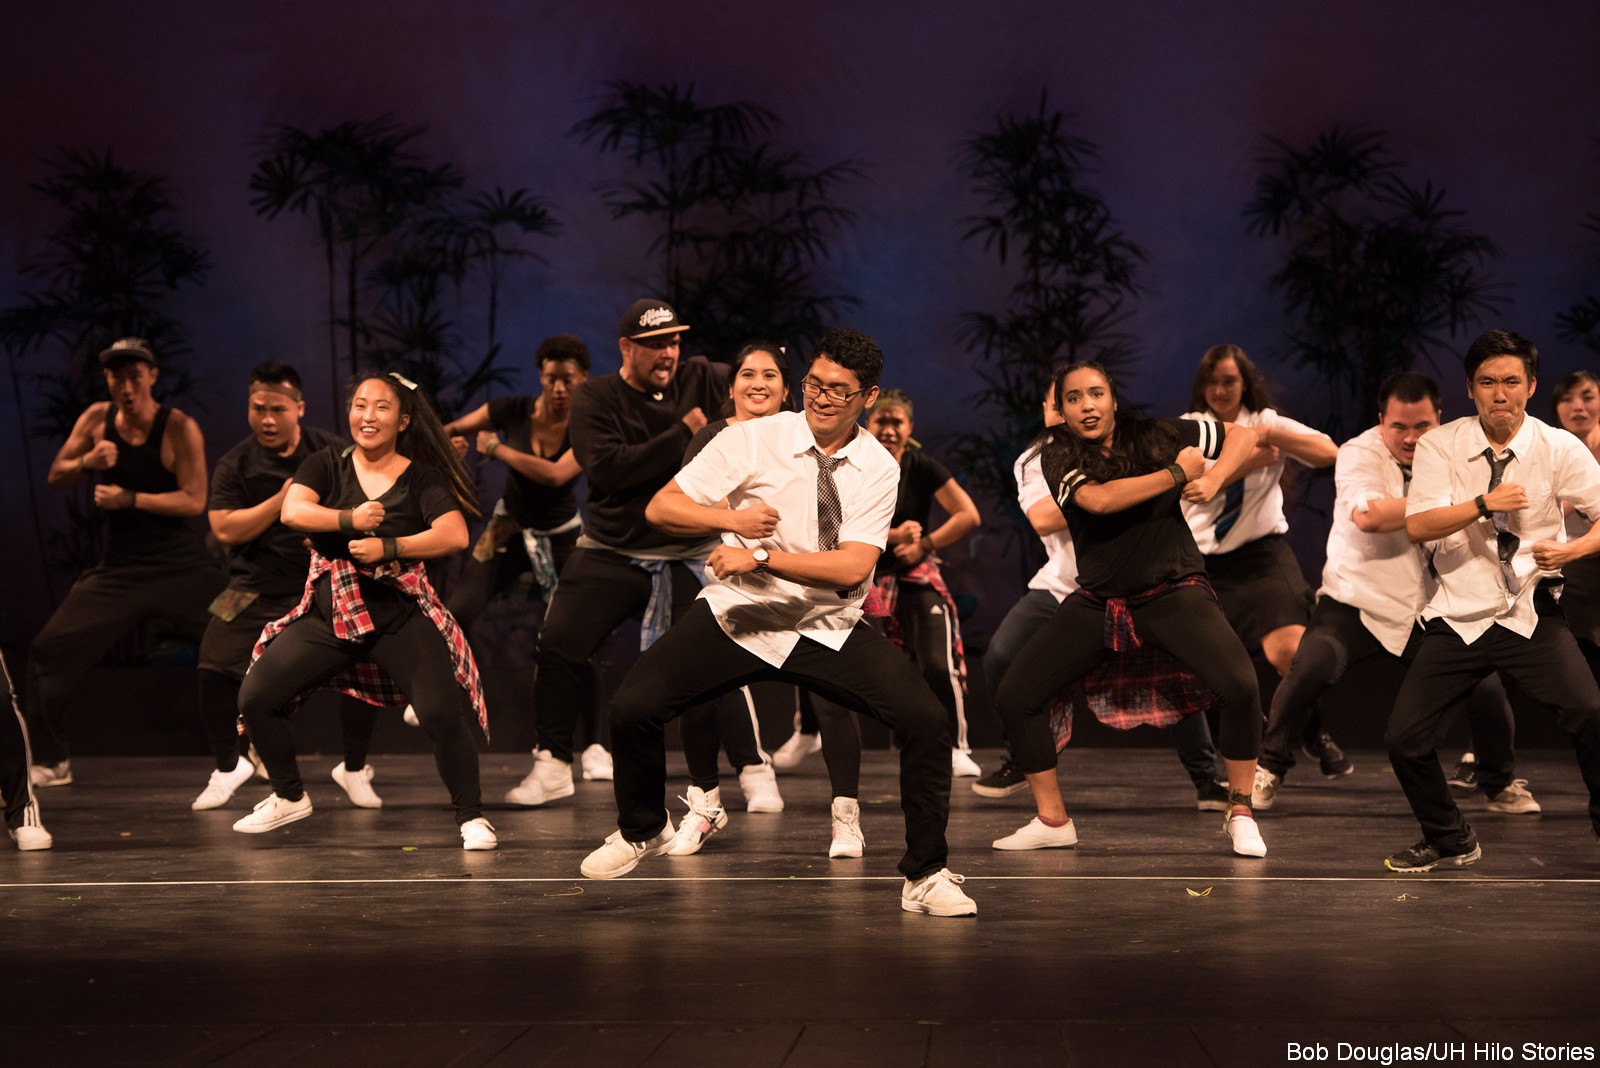 Large group of men and women dancing in modern black and white garb, white shoes.